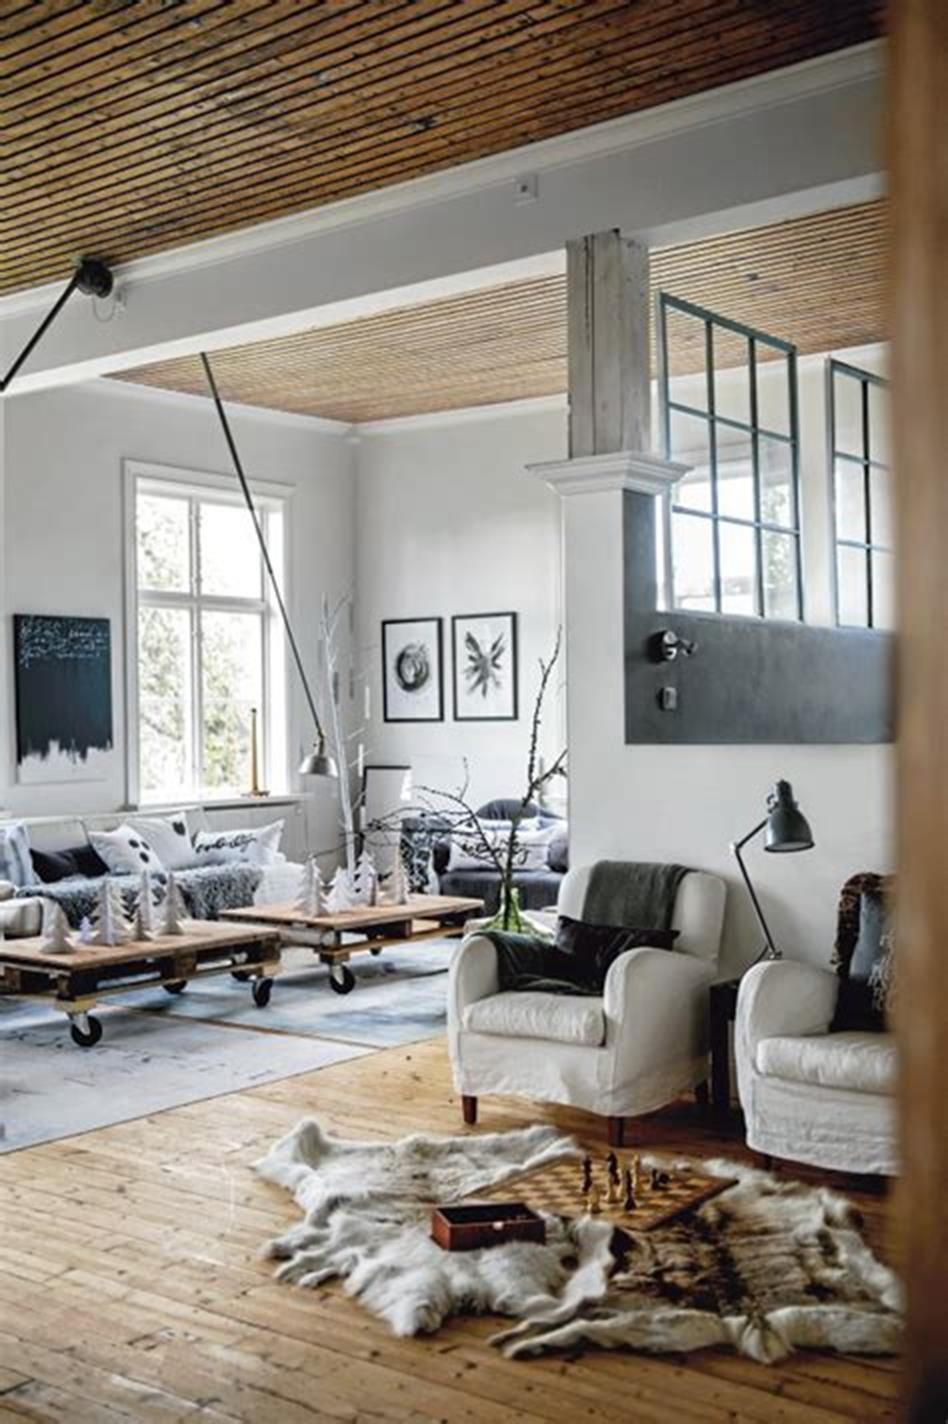 Scandinavian Living Room Ideas Ideas Decor Small Interior Layout Colors Modern Farmhouse Rustic Apartme Living Room Scandinavian Living Room Grey Interior